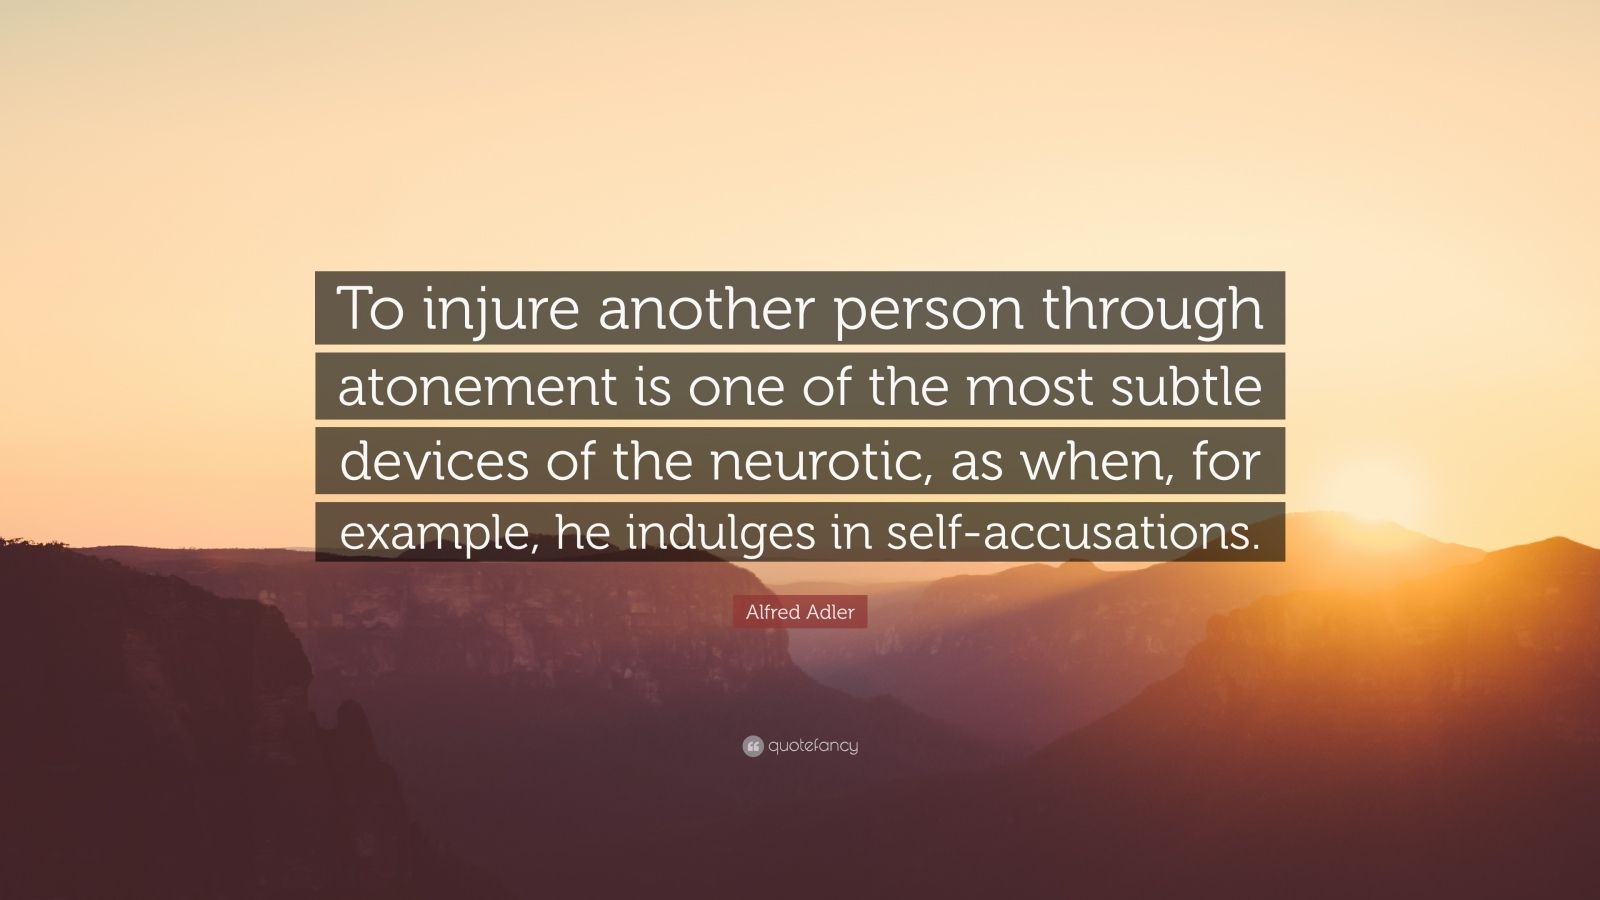 """Alfred Adler Quote: """"To injure another person through atonement is one of the most subtle devices of the neurotic, as when, for example, he indulges in self-accusations."""""""